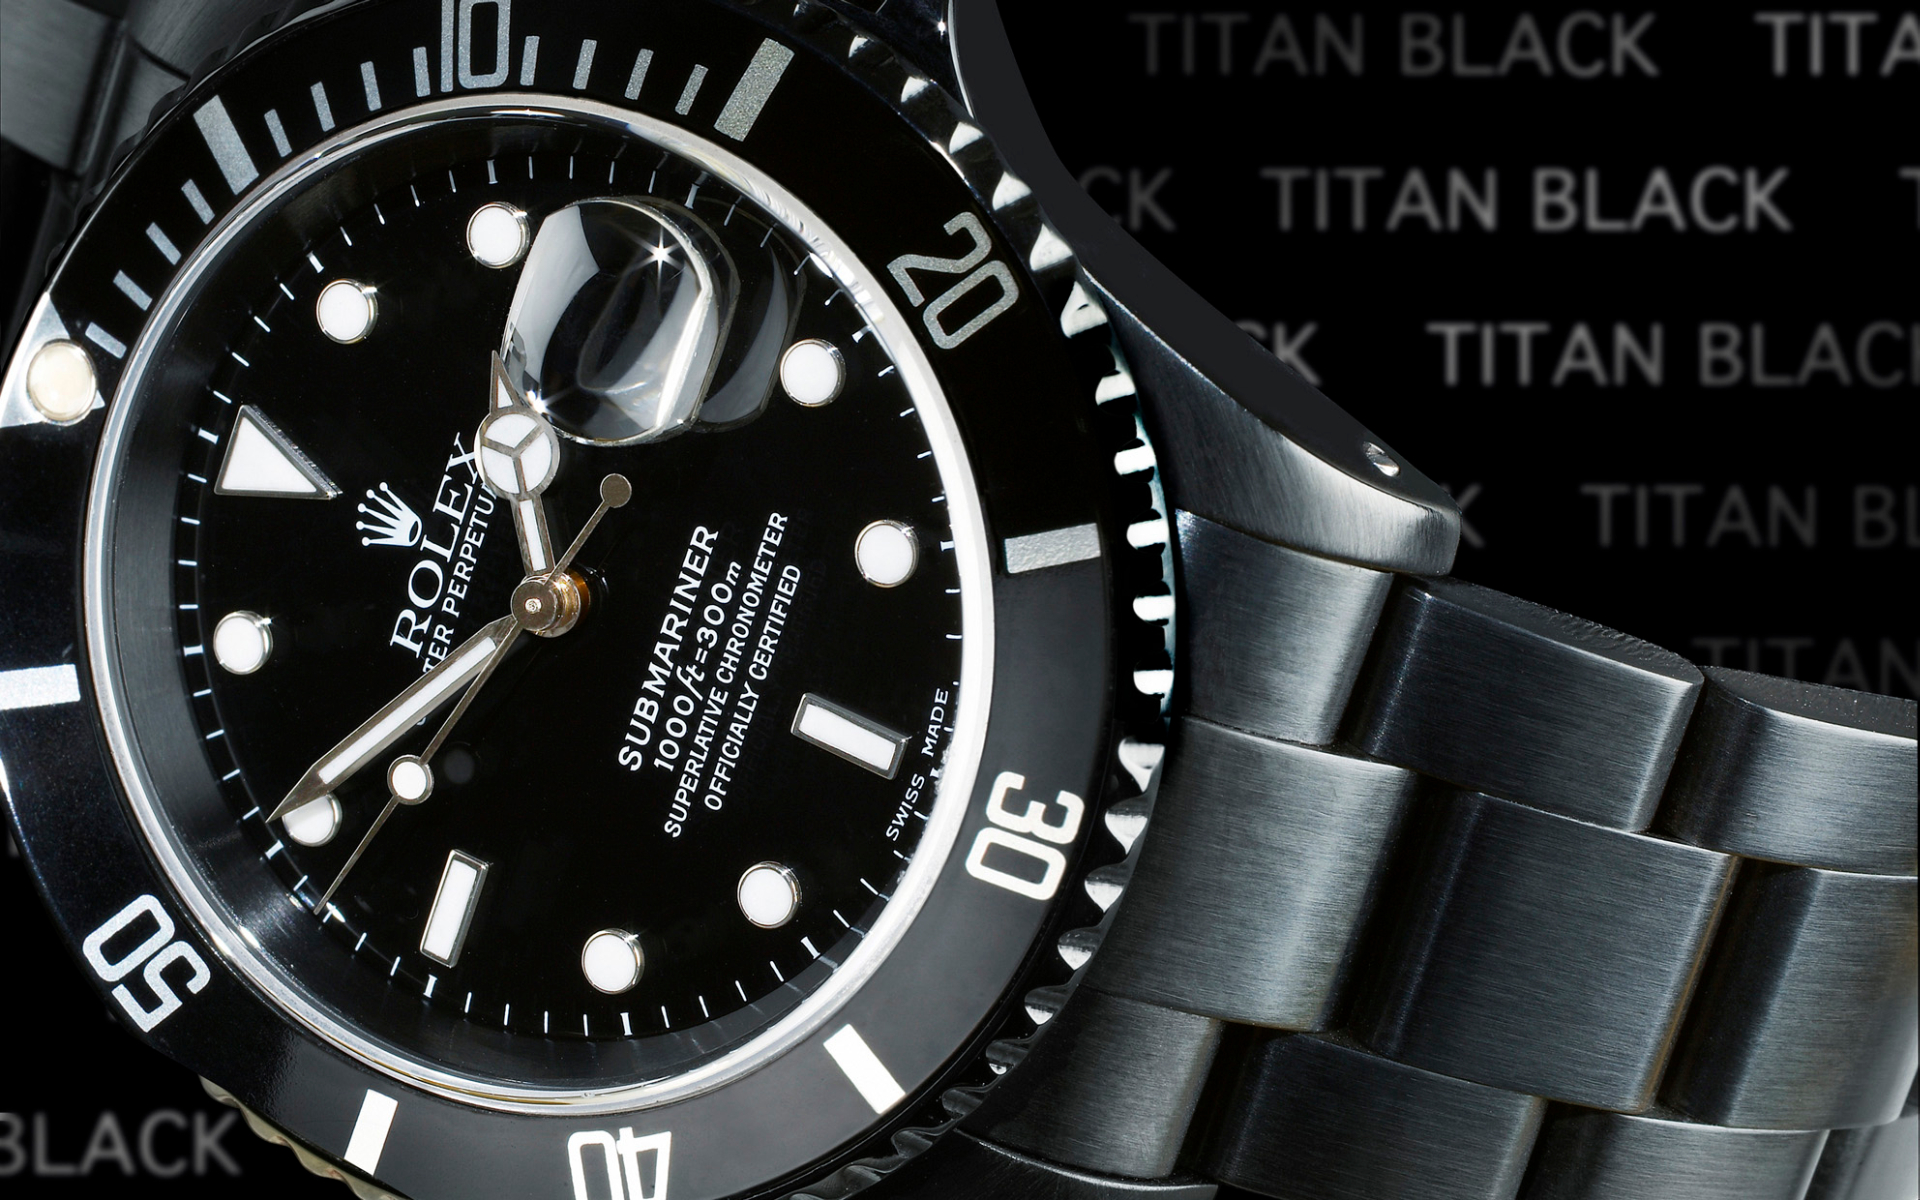 Titanblack Rolex Submariner Dlc Watch Fondo De Pantalla Hd